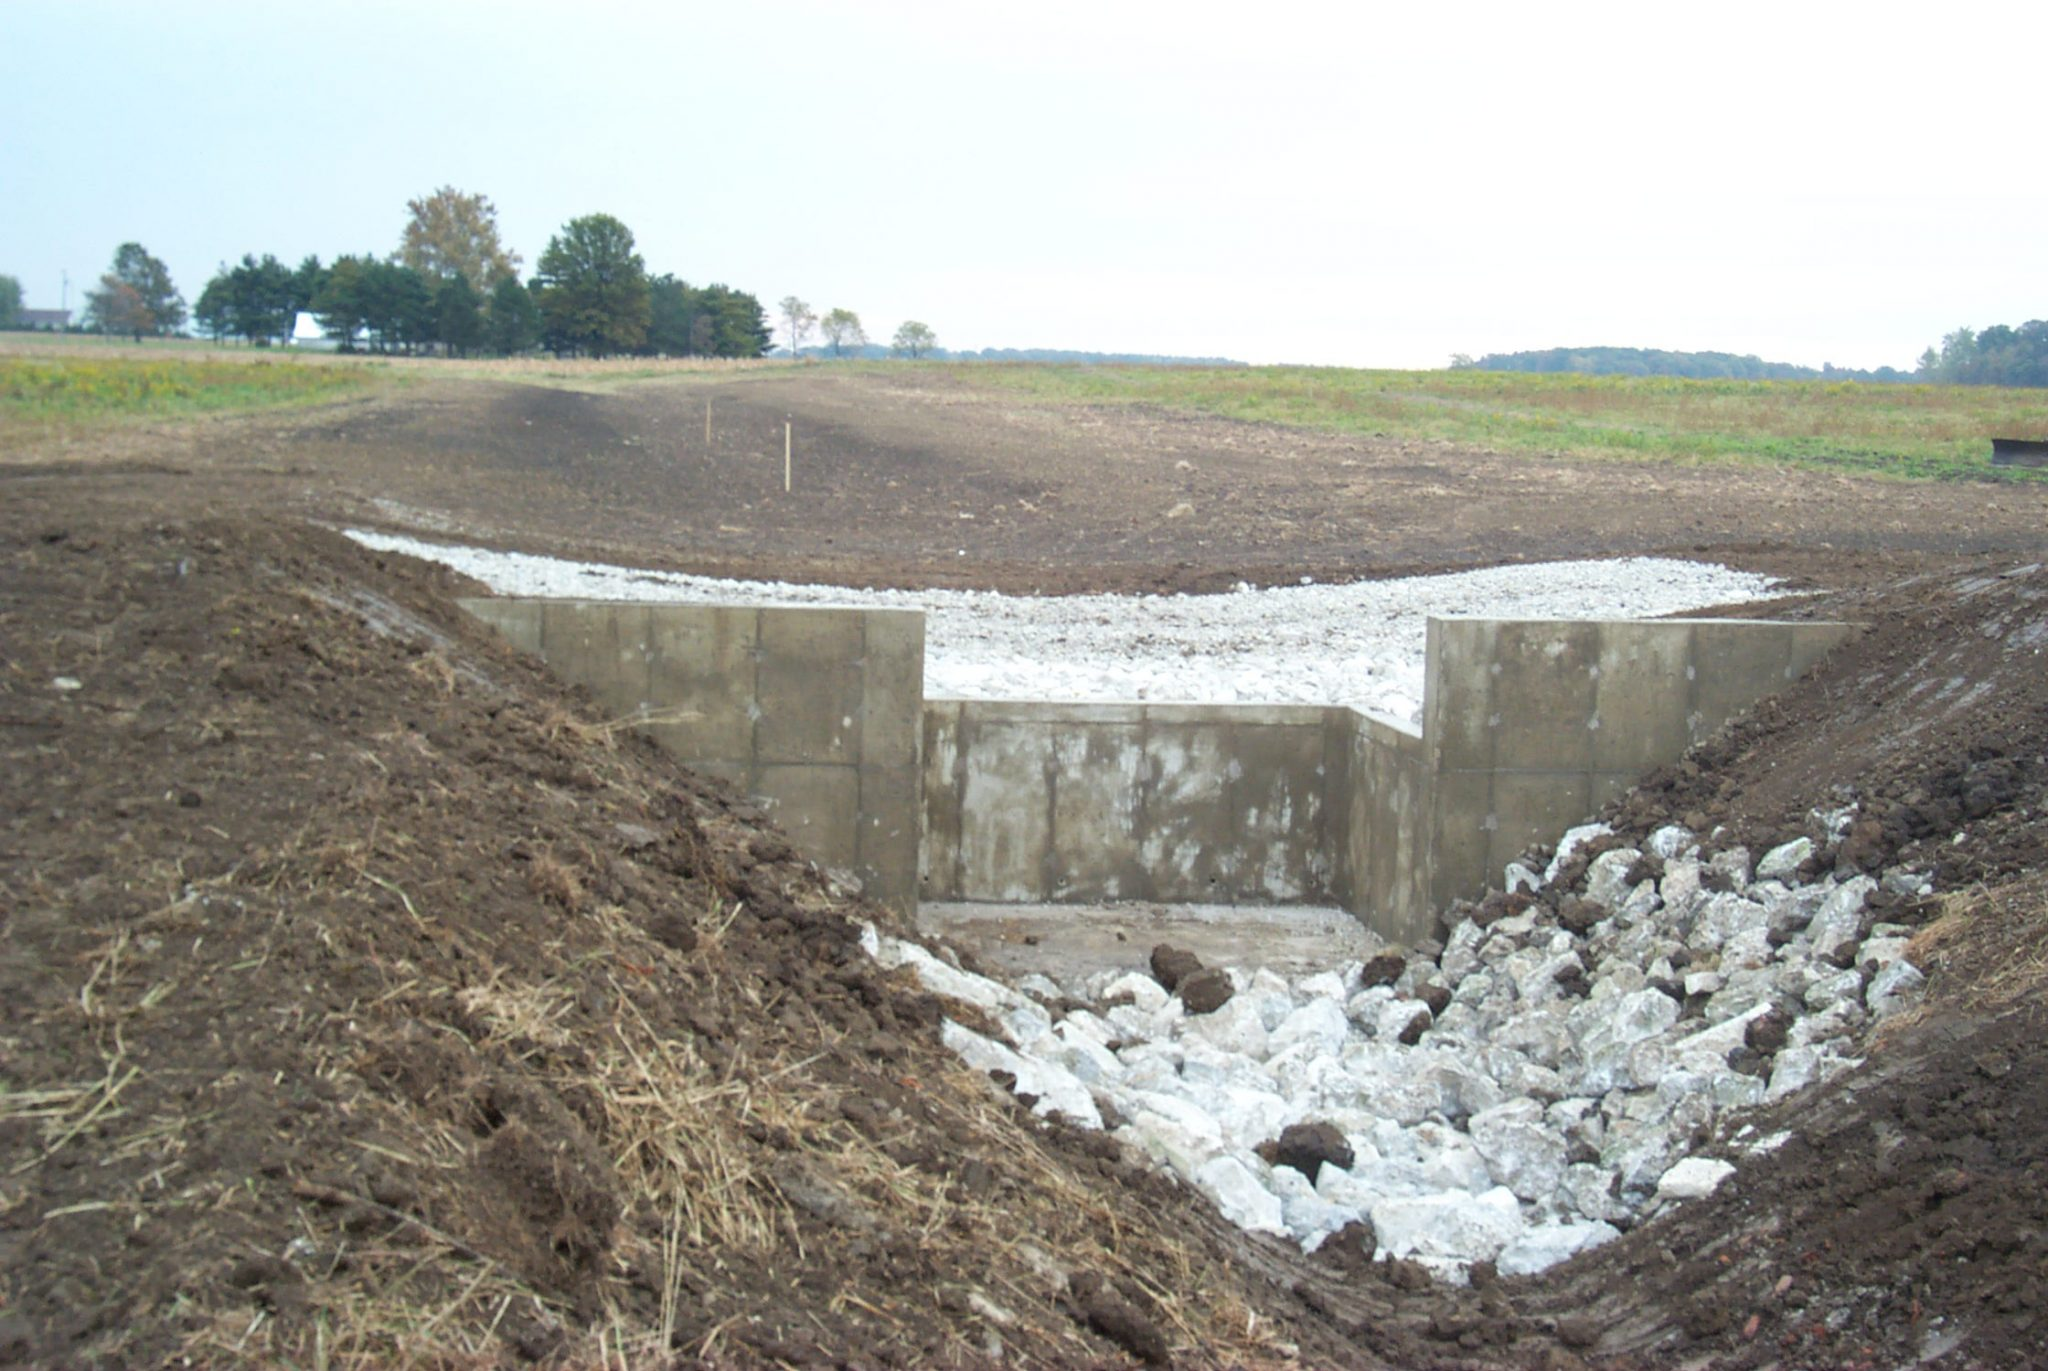 ww structure, concrete wall in a ditch